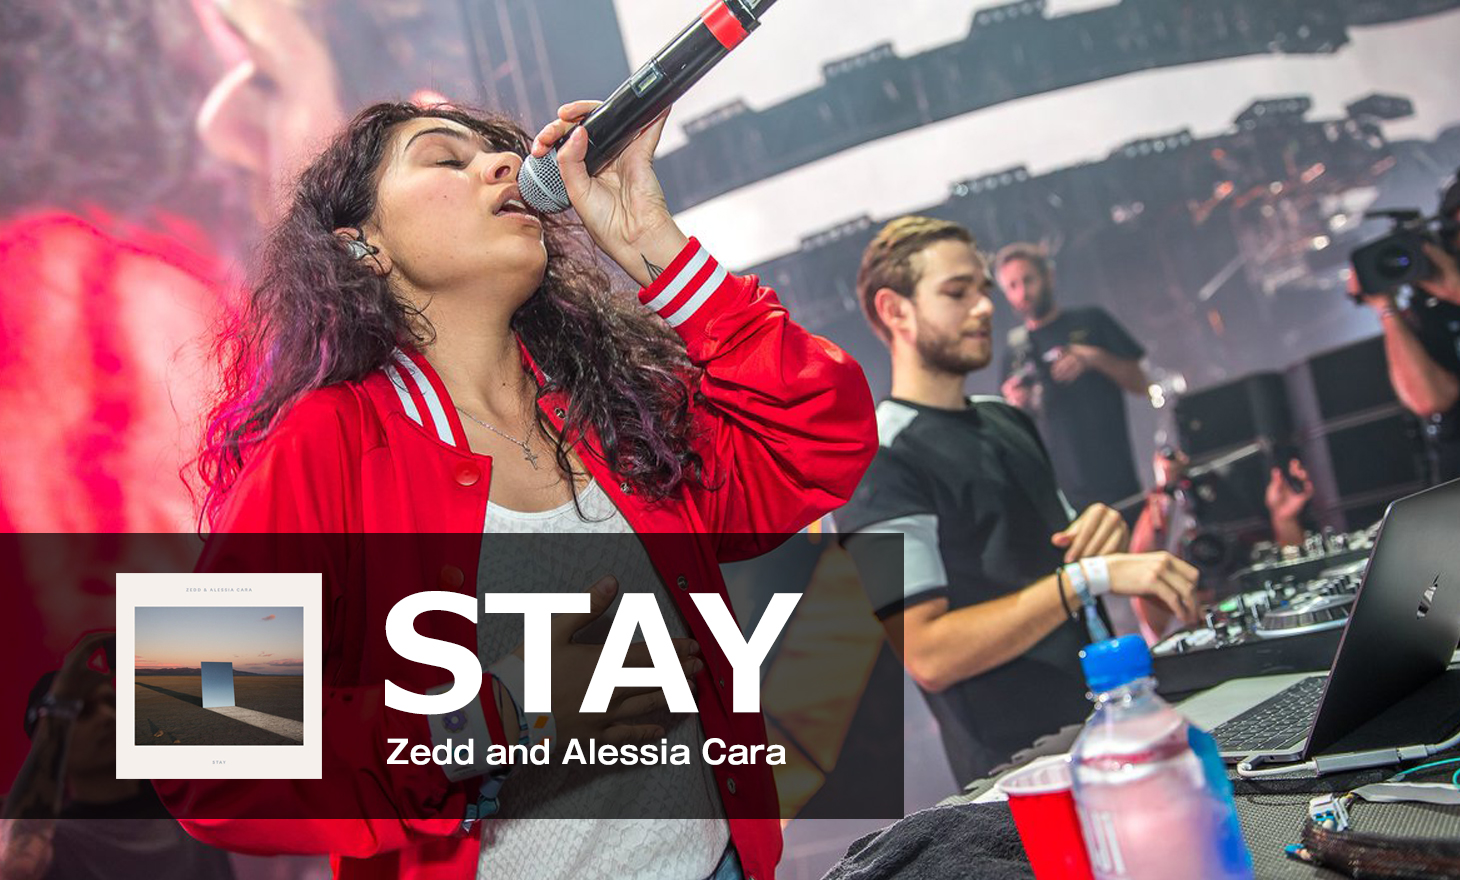 Zedd and Alessia Cara : Stay